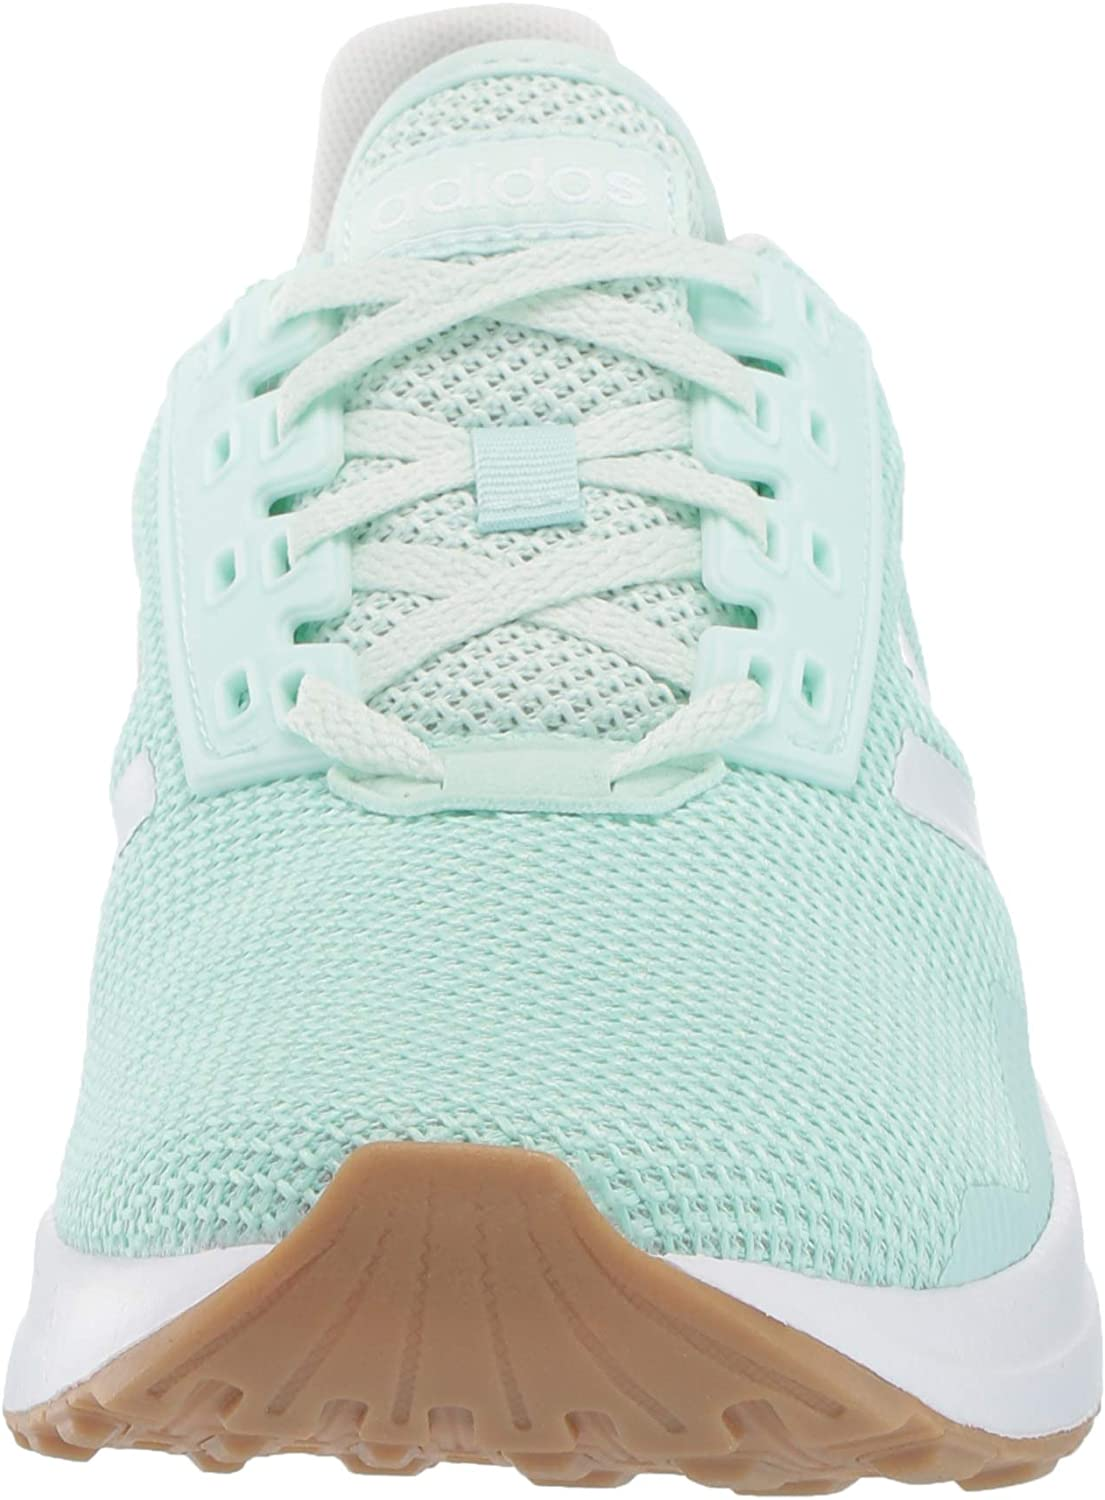 adidas Womens Duramo 9 Running Shoe Clear Mint/White/Ice Mint